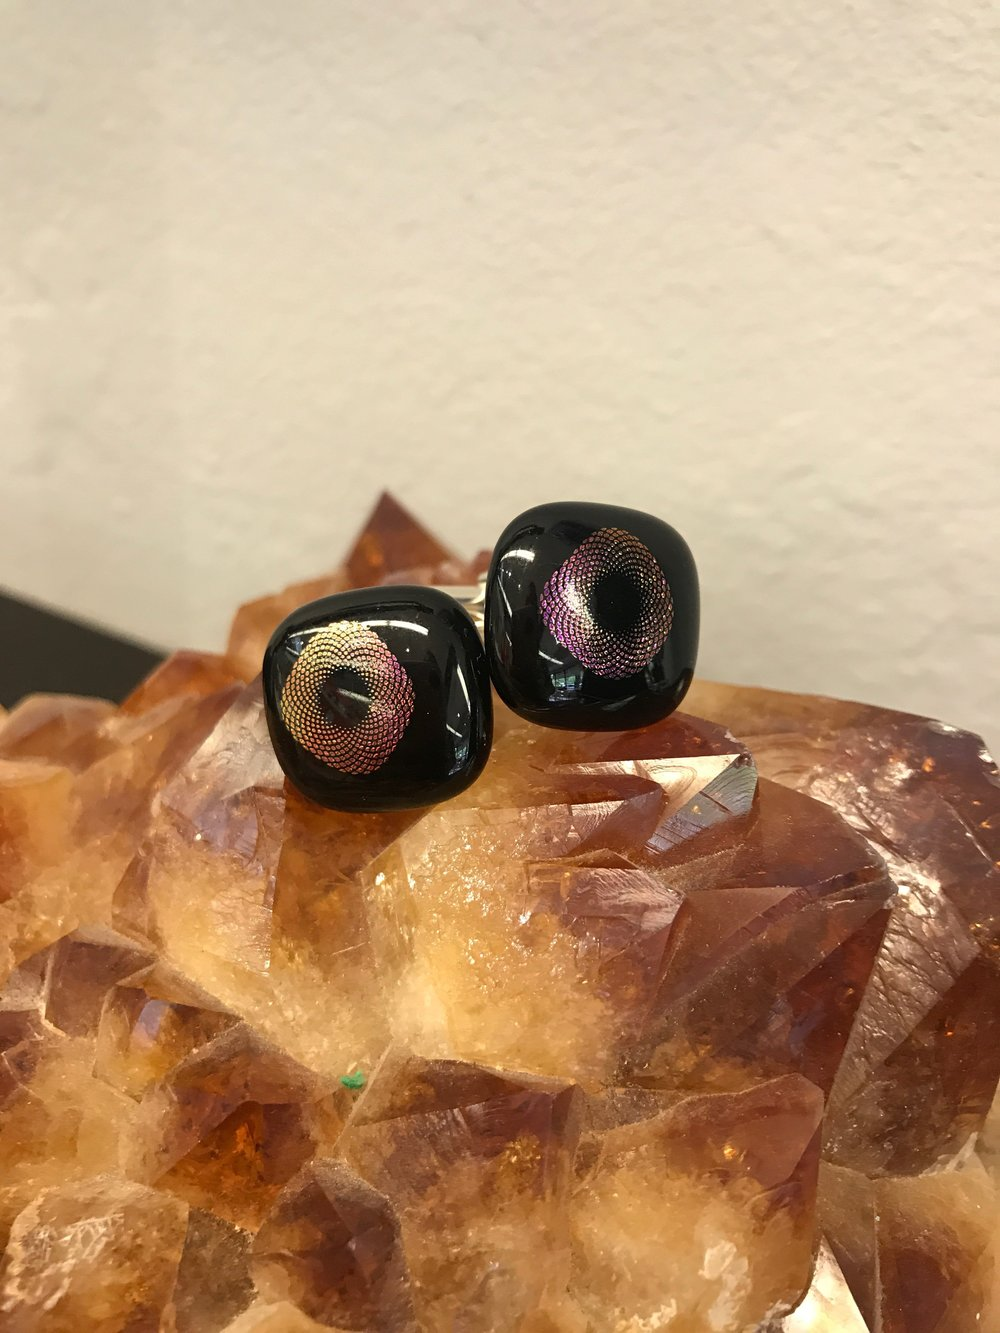 Matching cufflinks so the men can be just as dazzling as the ladies